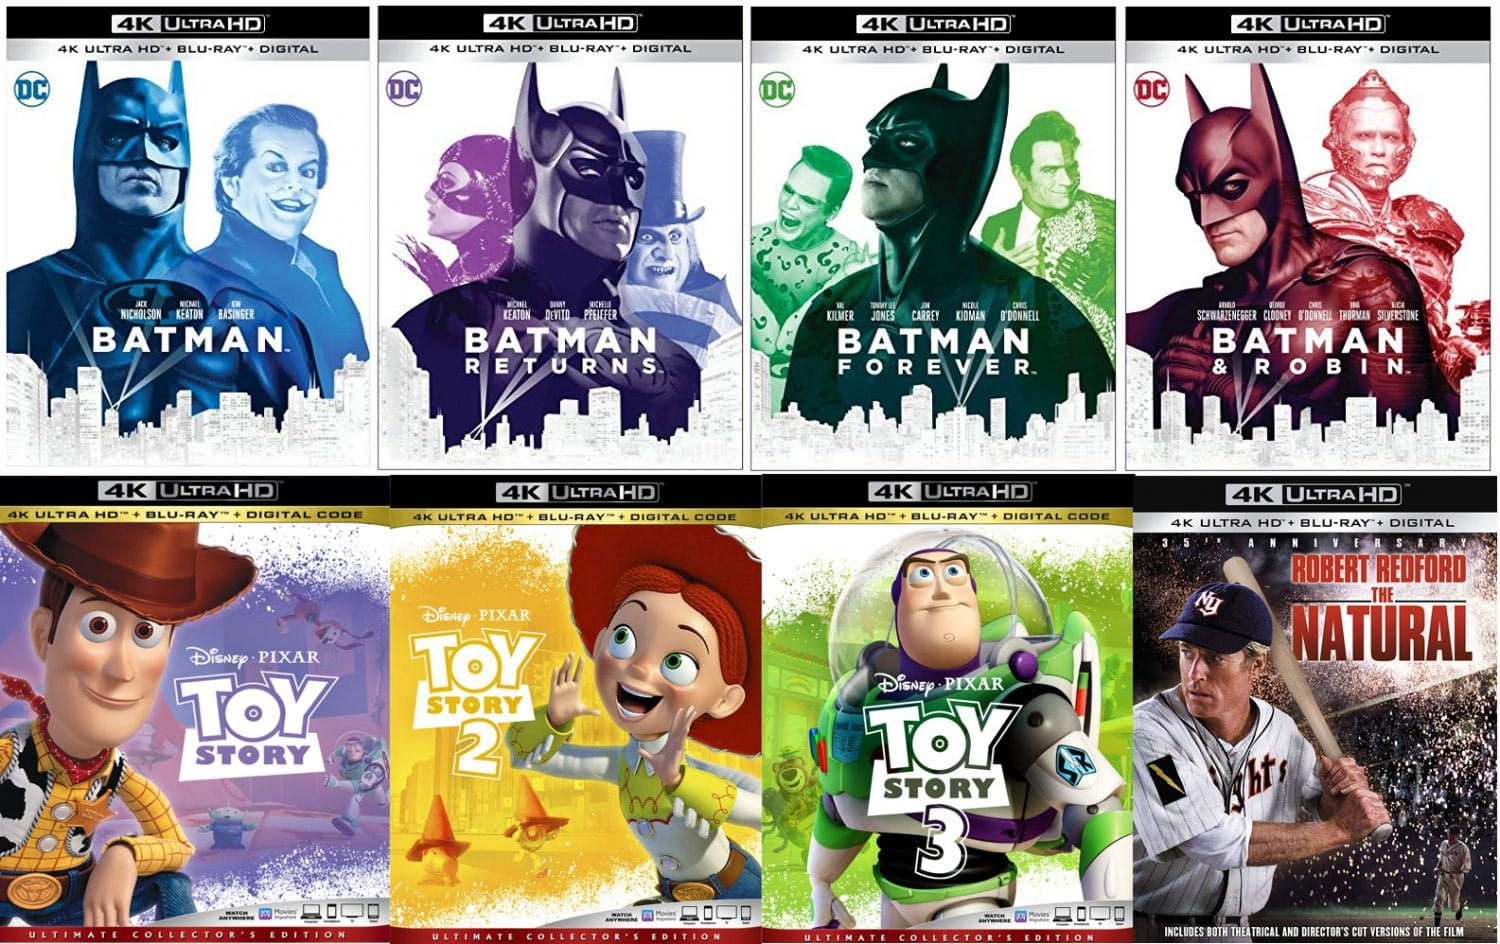 Four Batman movies and three Toy Story movies join The Natural on 4K ultra HD.